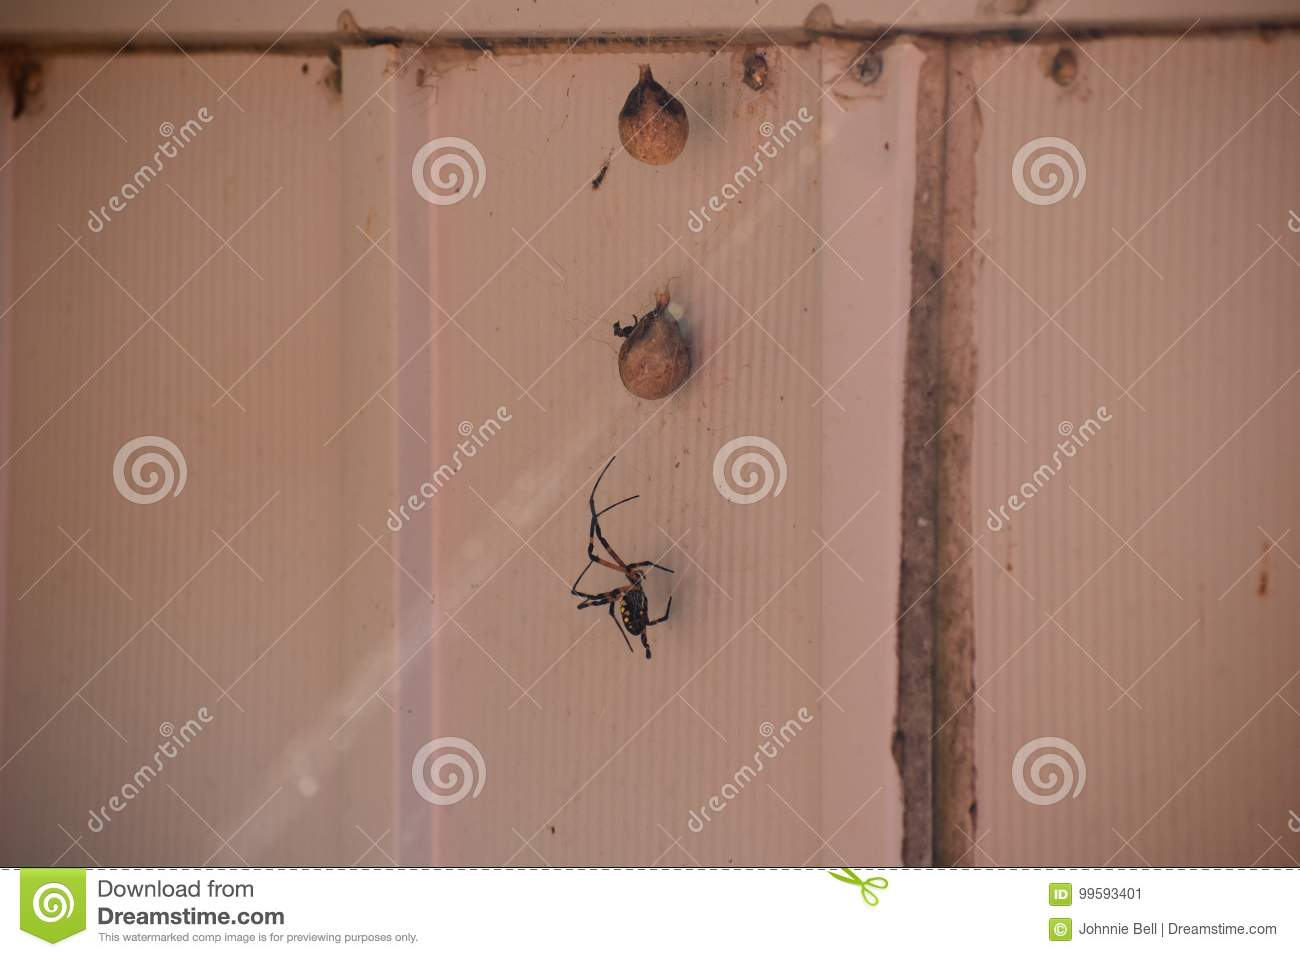 Garden Spider and Eggs stock image. Image of building - 99593401